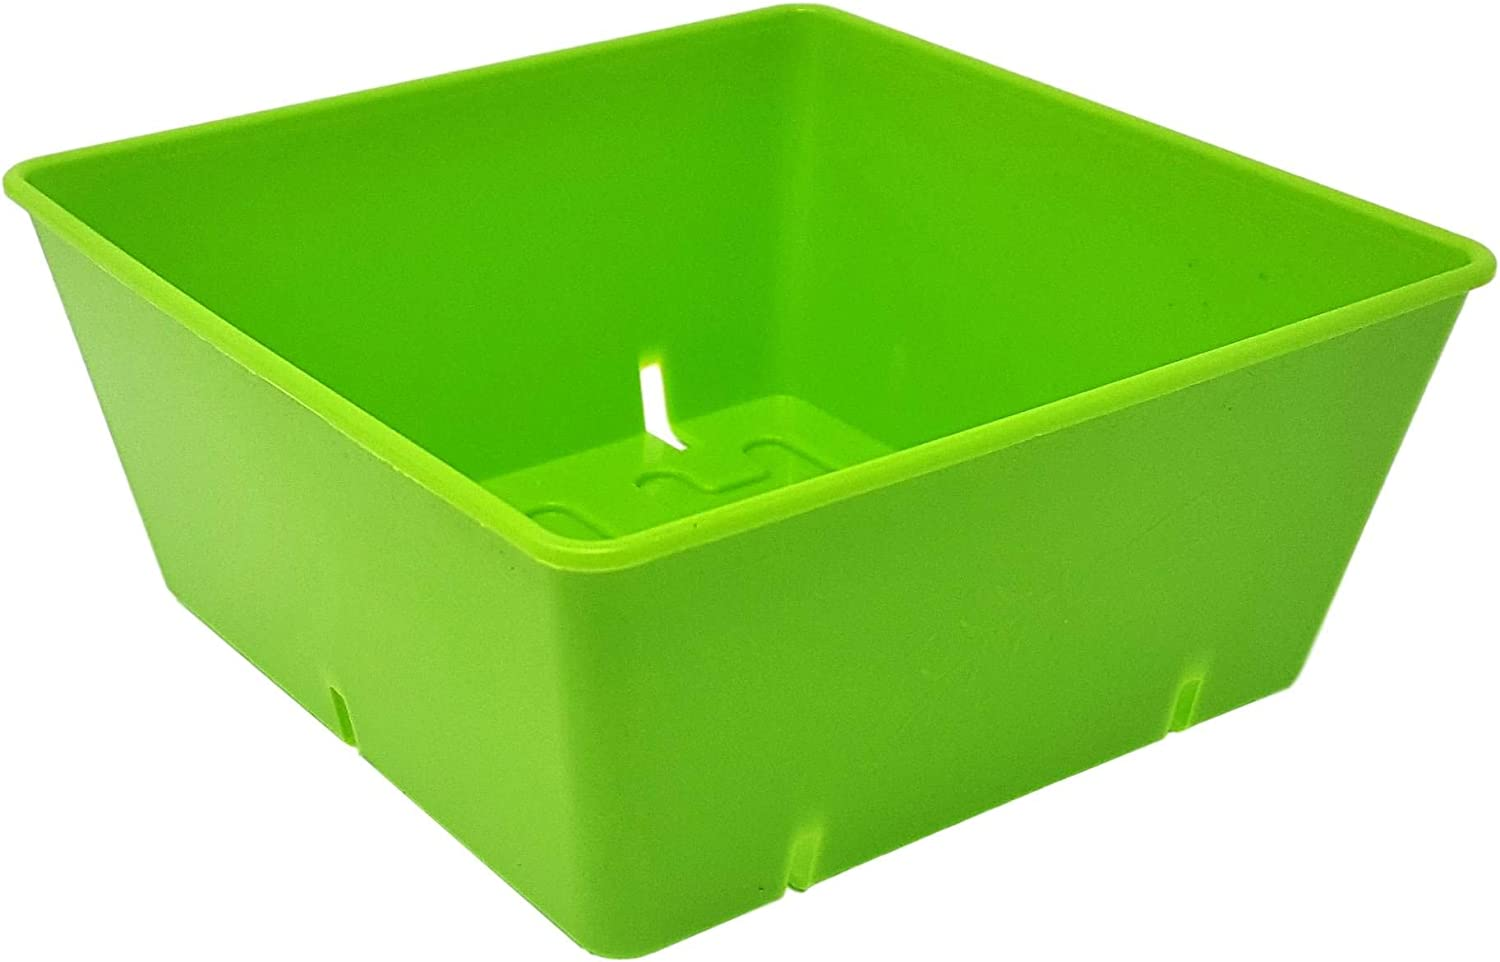 5×5 Seed Tray Green – 80 Pack – Extra Strength 5 x 5 Inserts Grow Microgreens, Wheatgrass Seeds, Fodder 1020 System 801 Trays